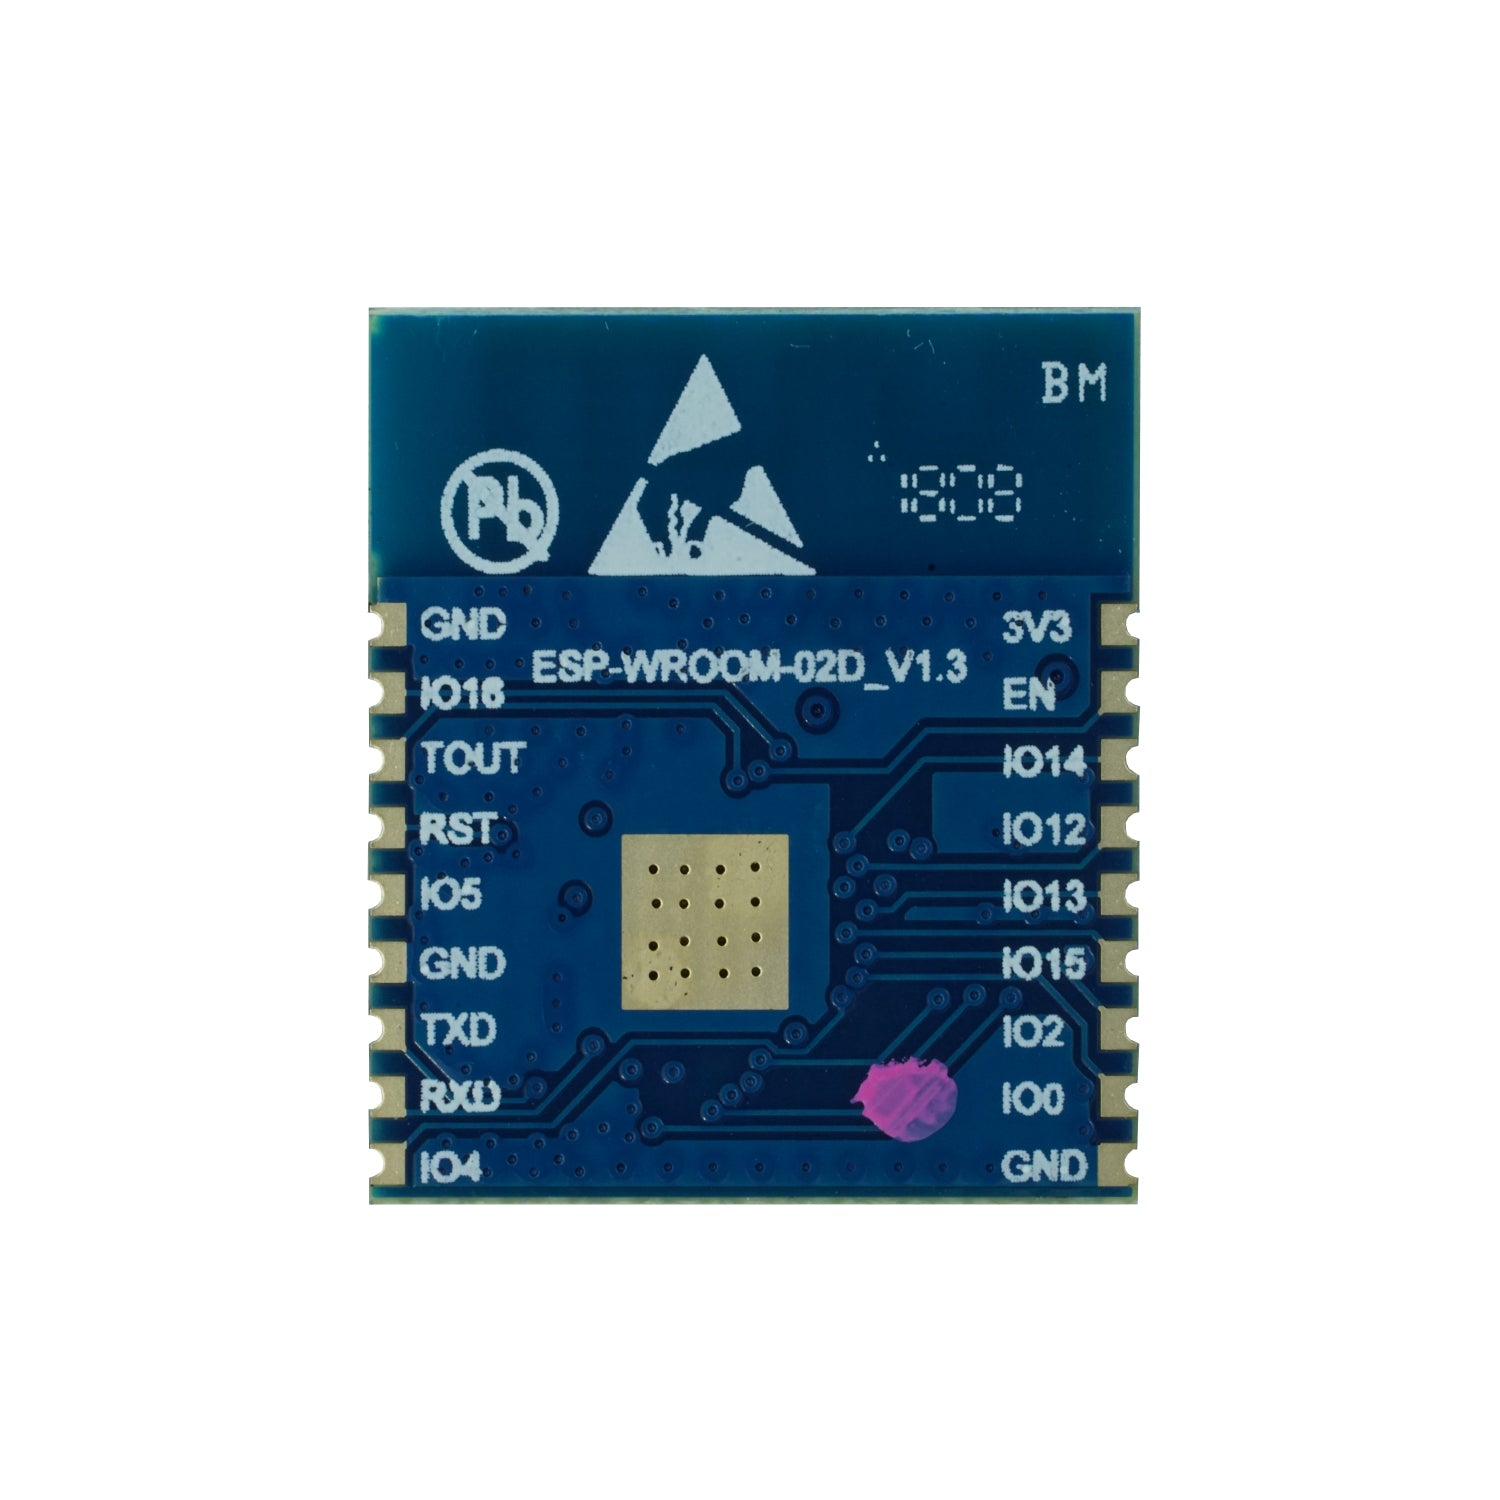 ESP-WROOM-02D - Low-Power Wi-Fi Module with PCB Antenna